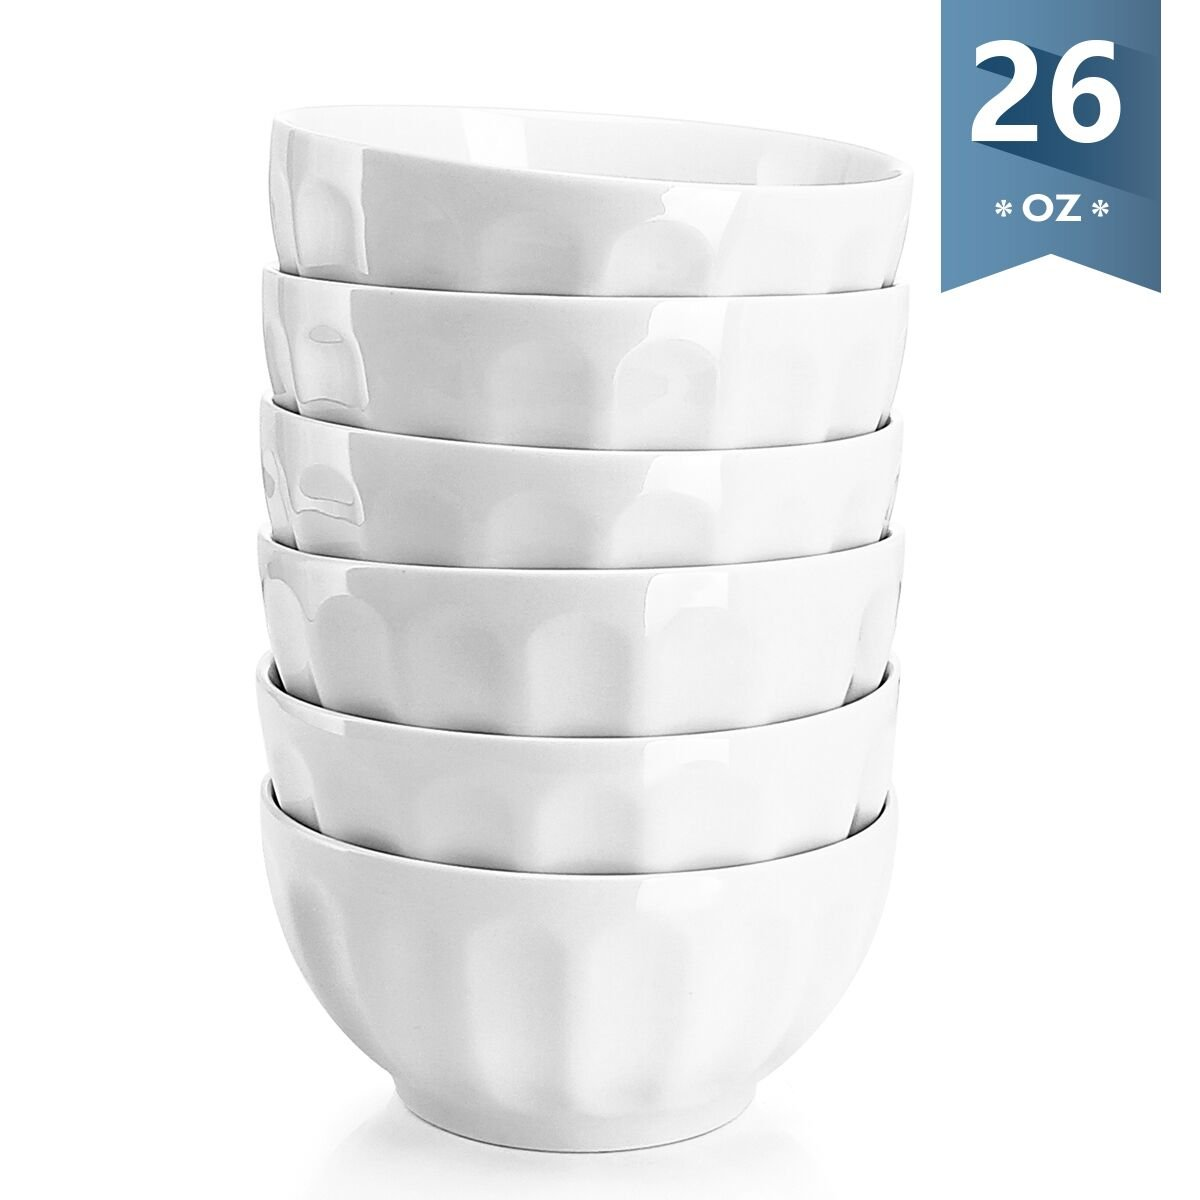 Sweese 1108 Porcelain Fluted Bowl Set - 26 OZ Deep